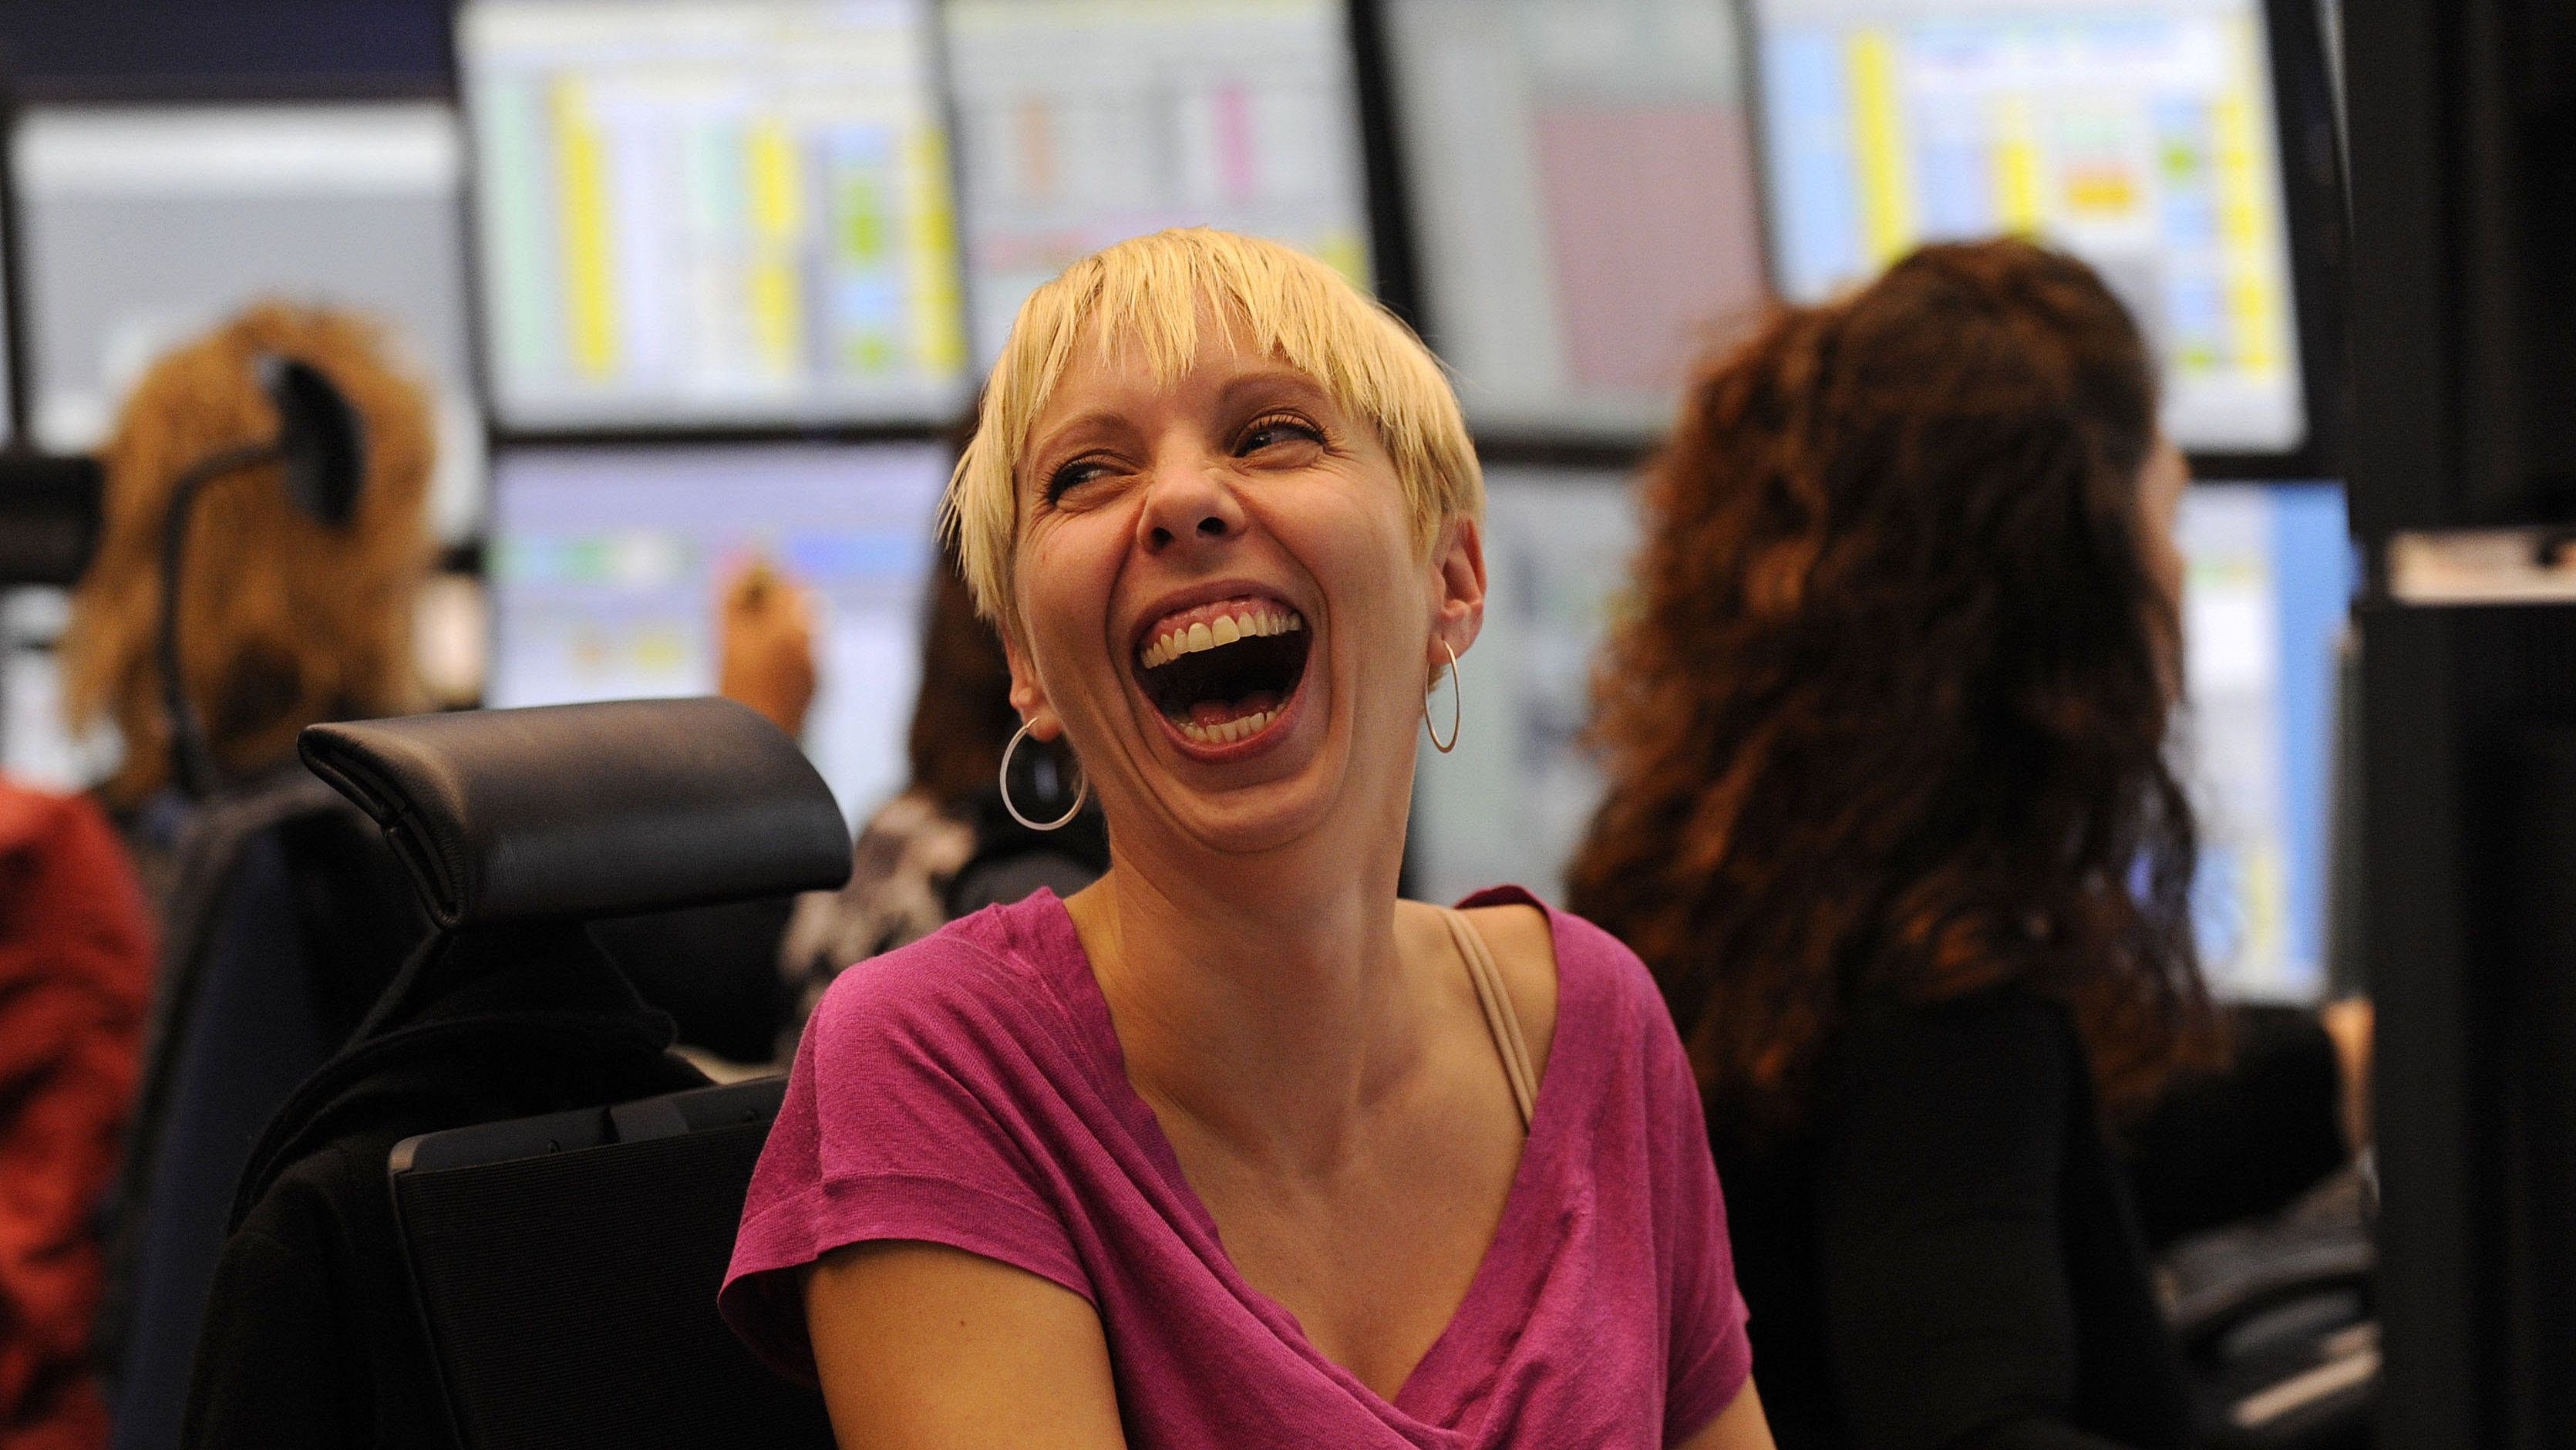 A share trader reacts as she sits behind her trading terminal at the Frankfurt stock exchange, October 13, 2008. REUTERS/Kai Pfaffenbach(GERMANY)